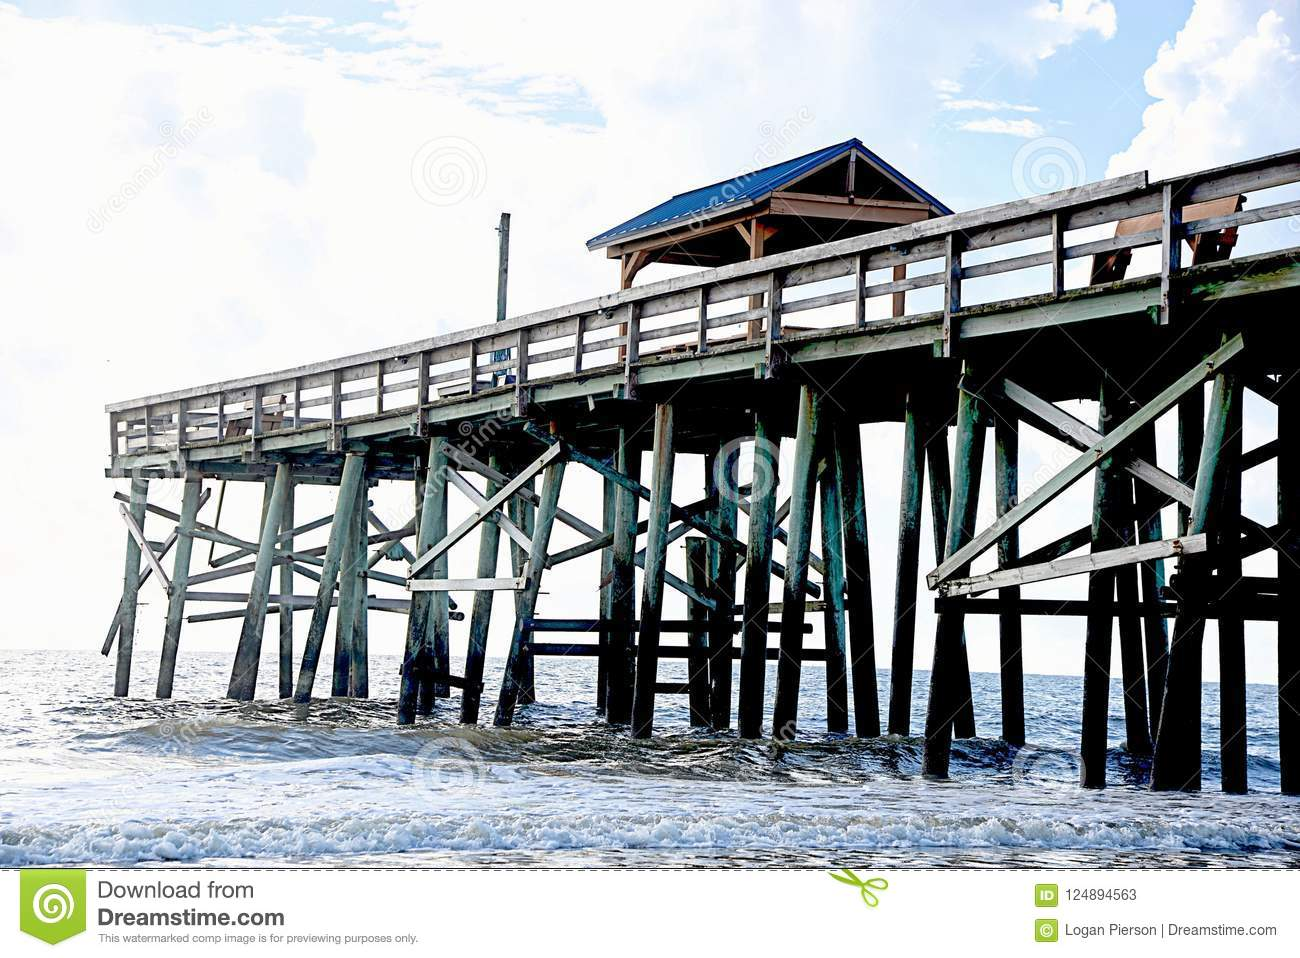 The fish are attracted to the pier which brings the osprey